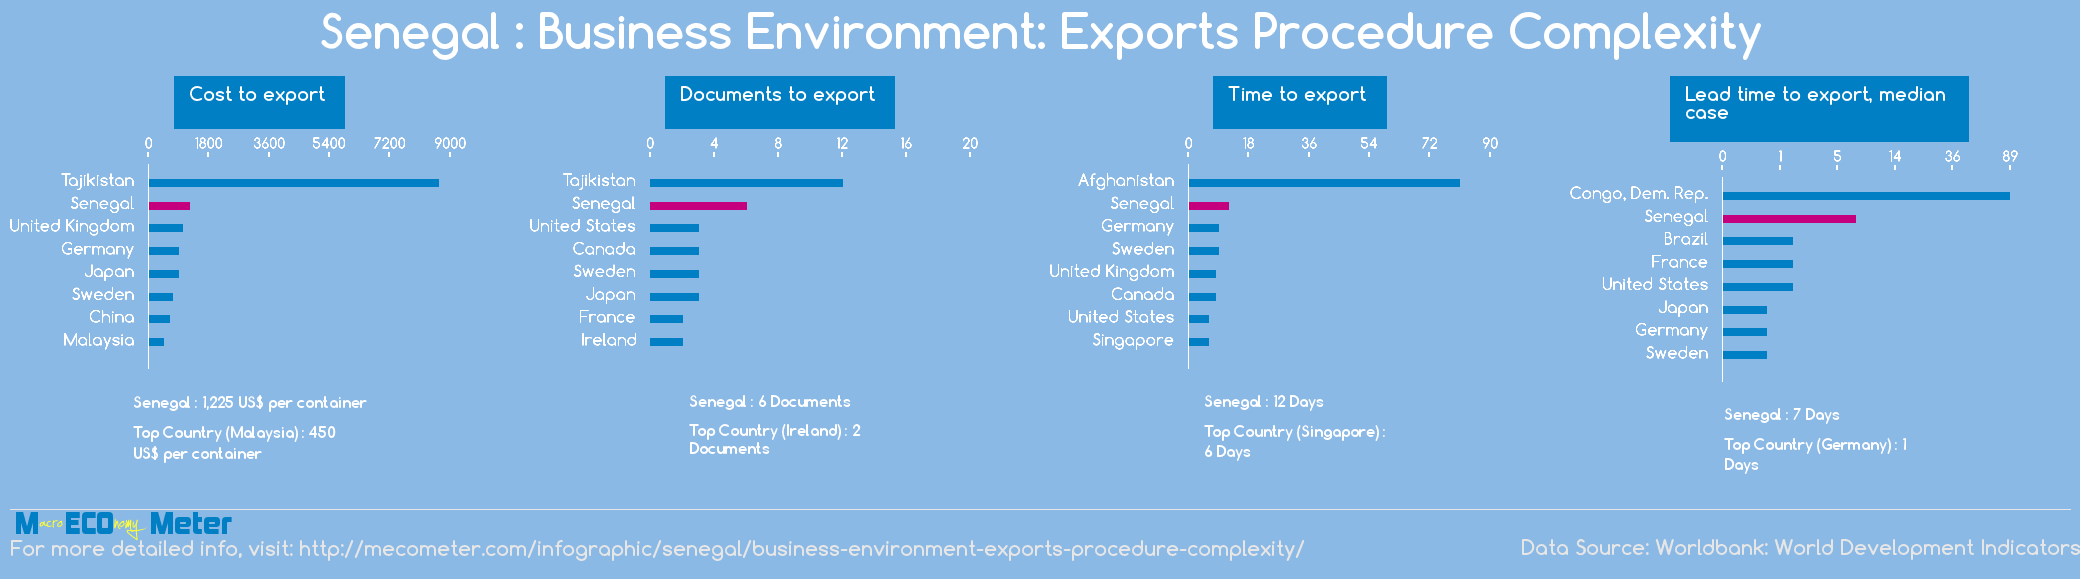 Senegal : Business Environment: Exports Procedure Complexity